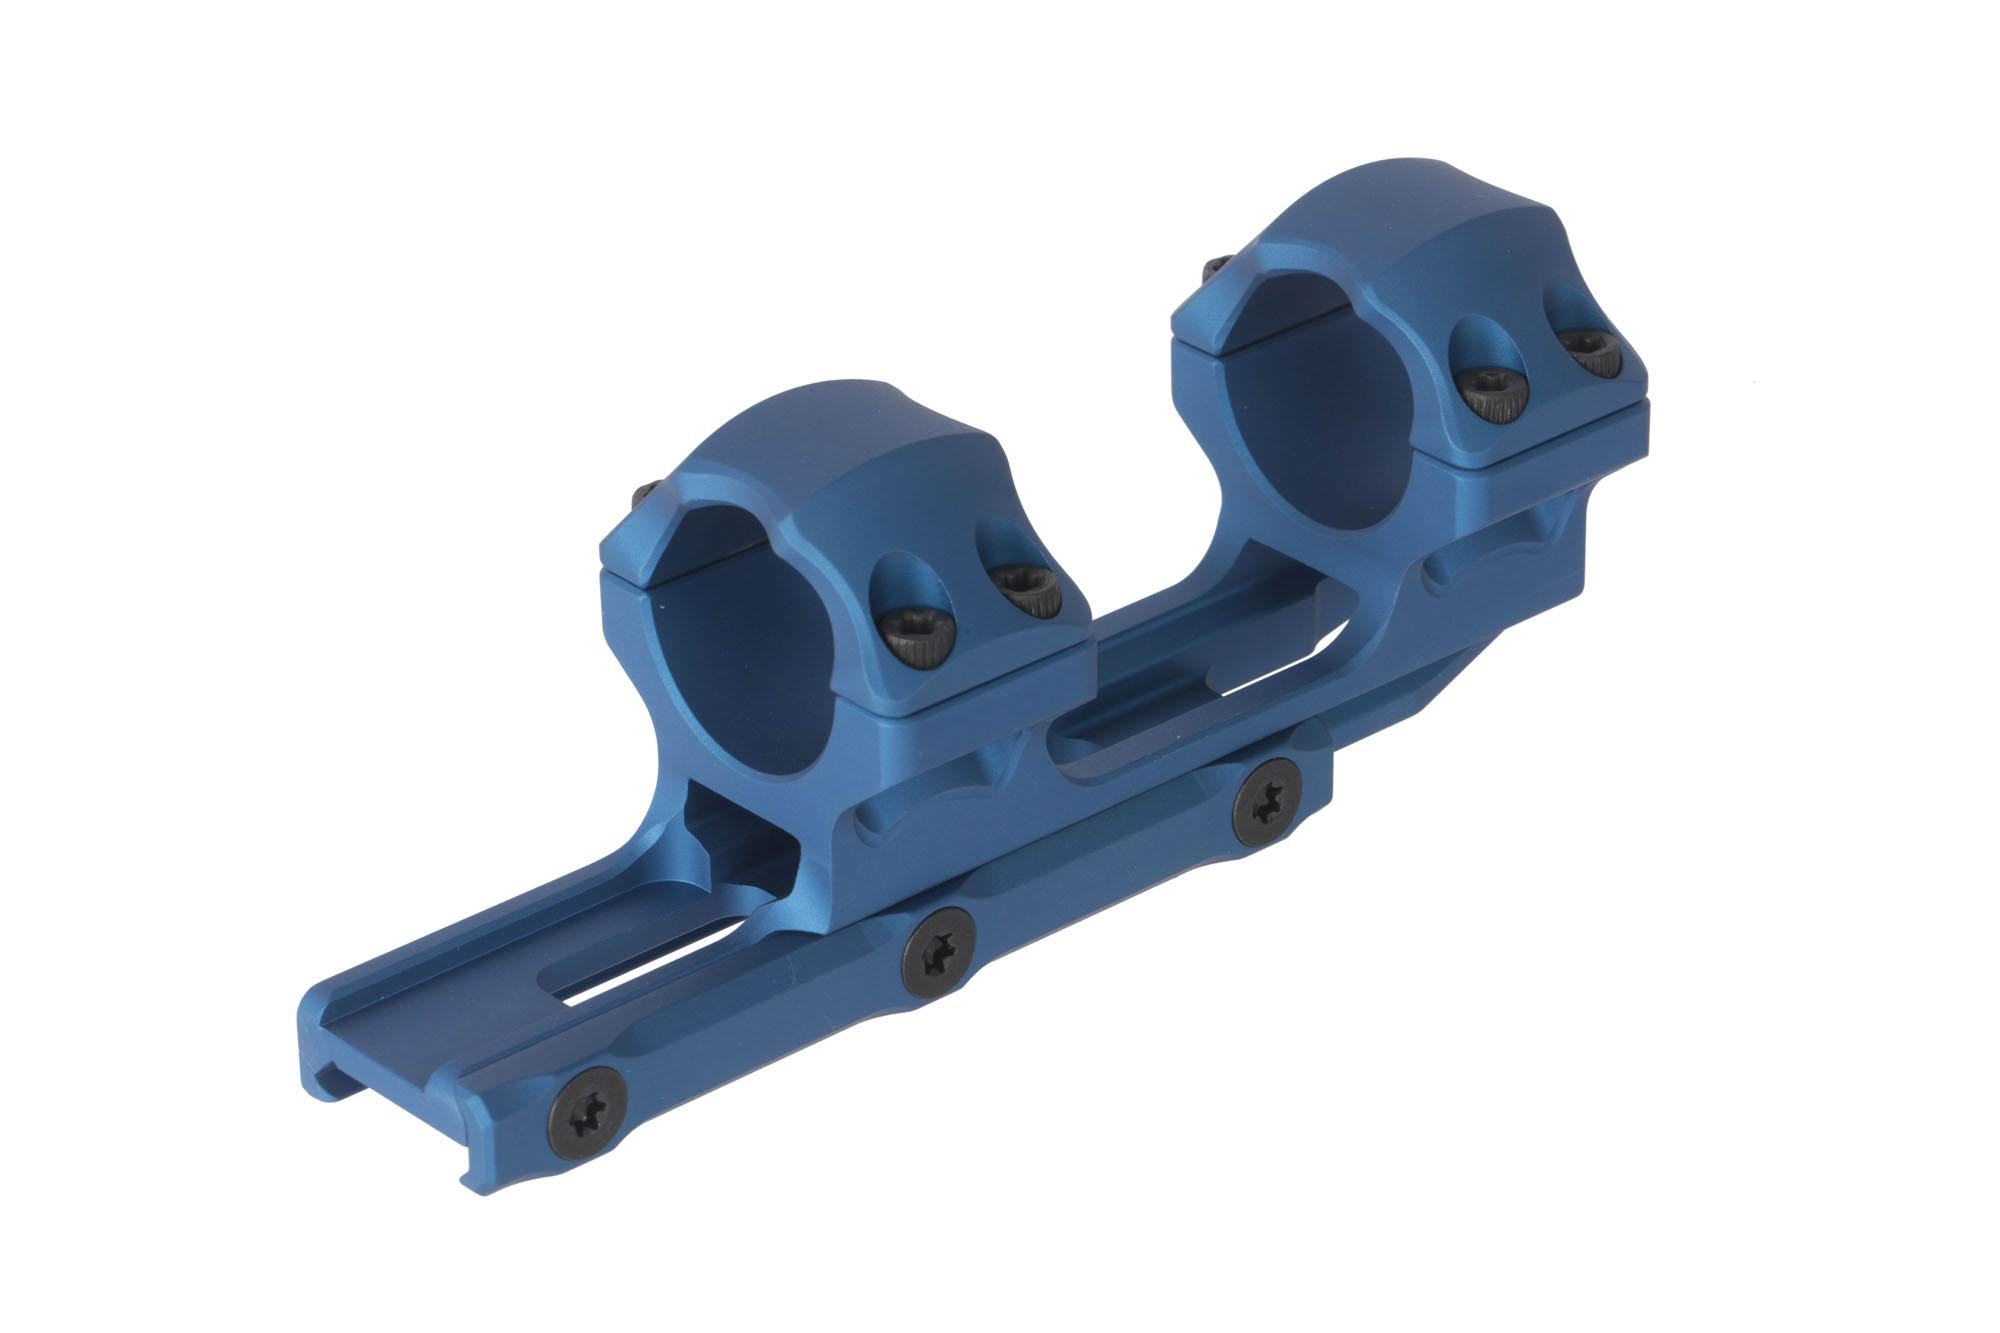 Leapers UTG ACCU-SYNC 1in rifle scope mount with blue medium height rings mounts securely with three cross bolts